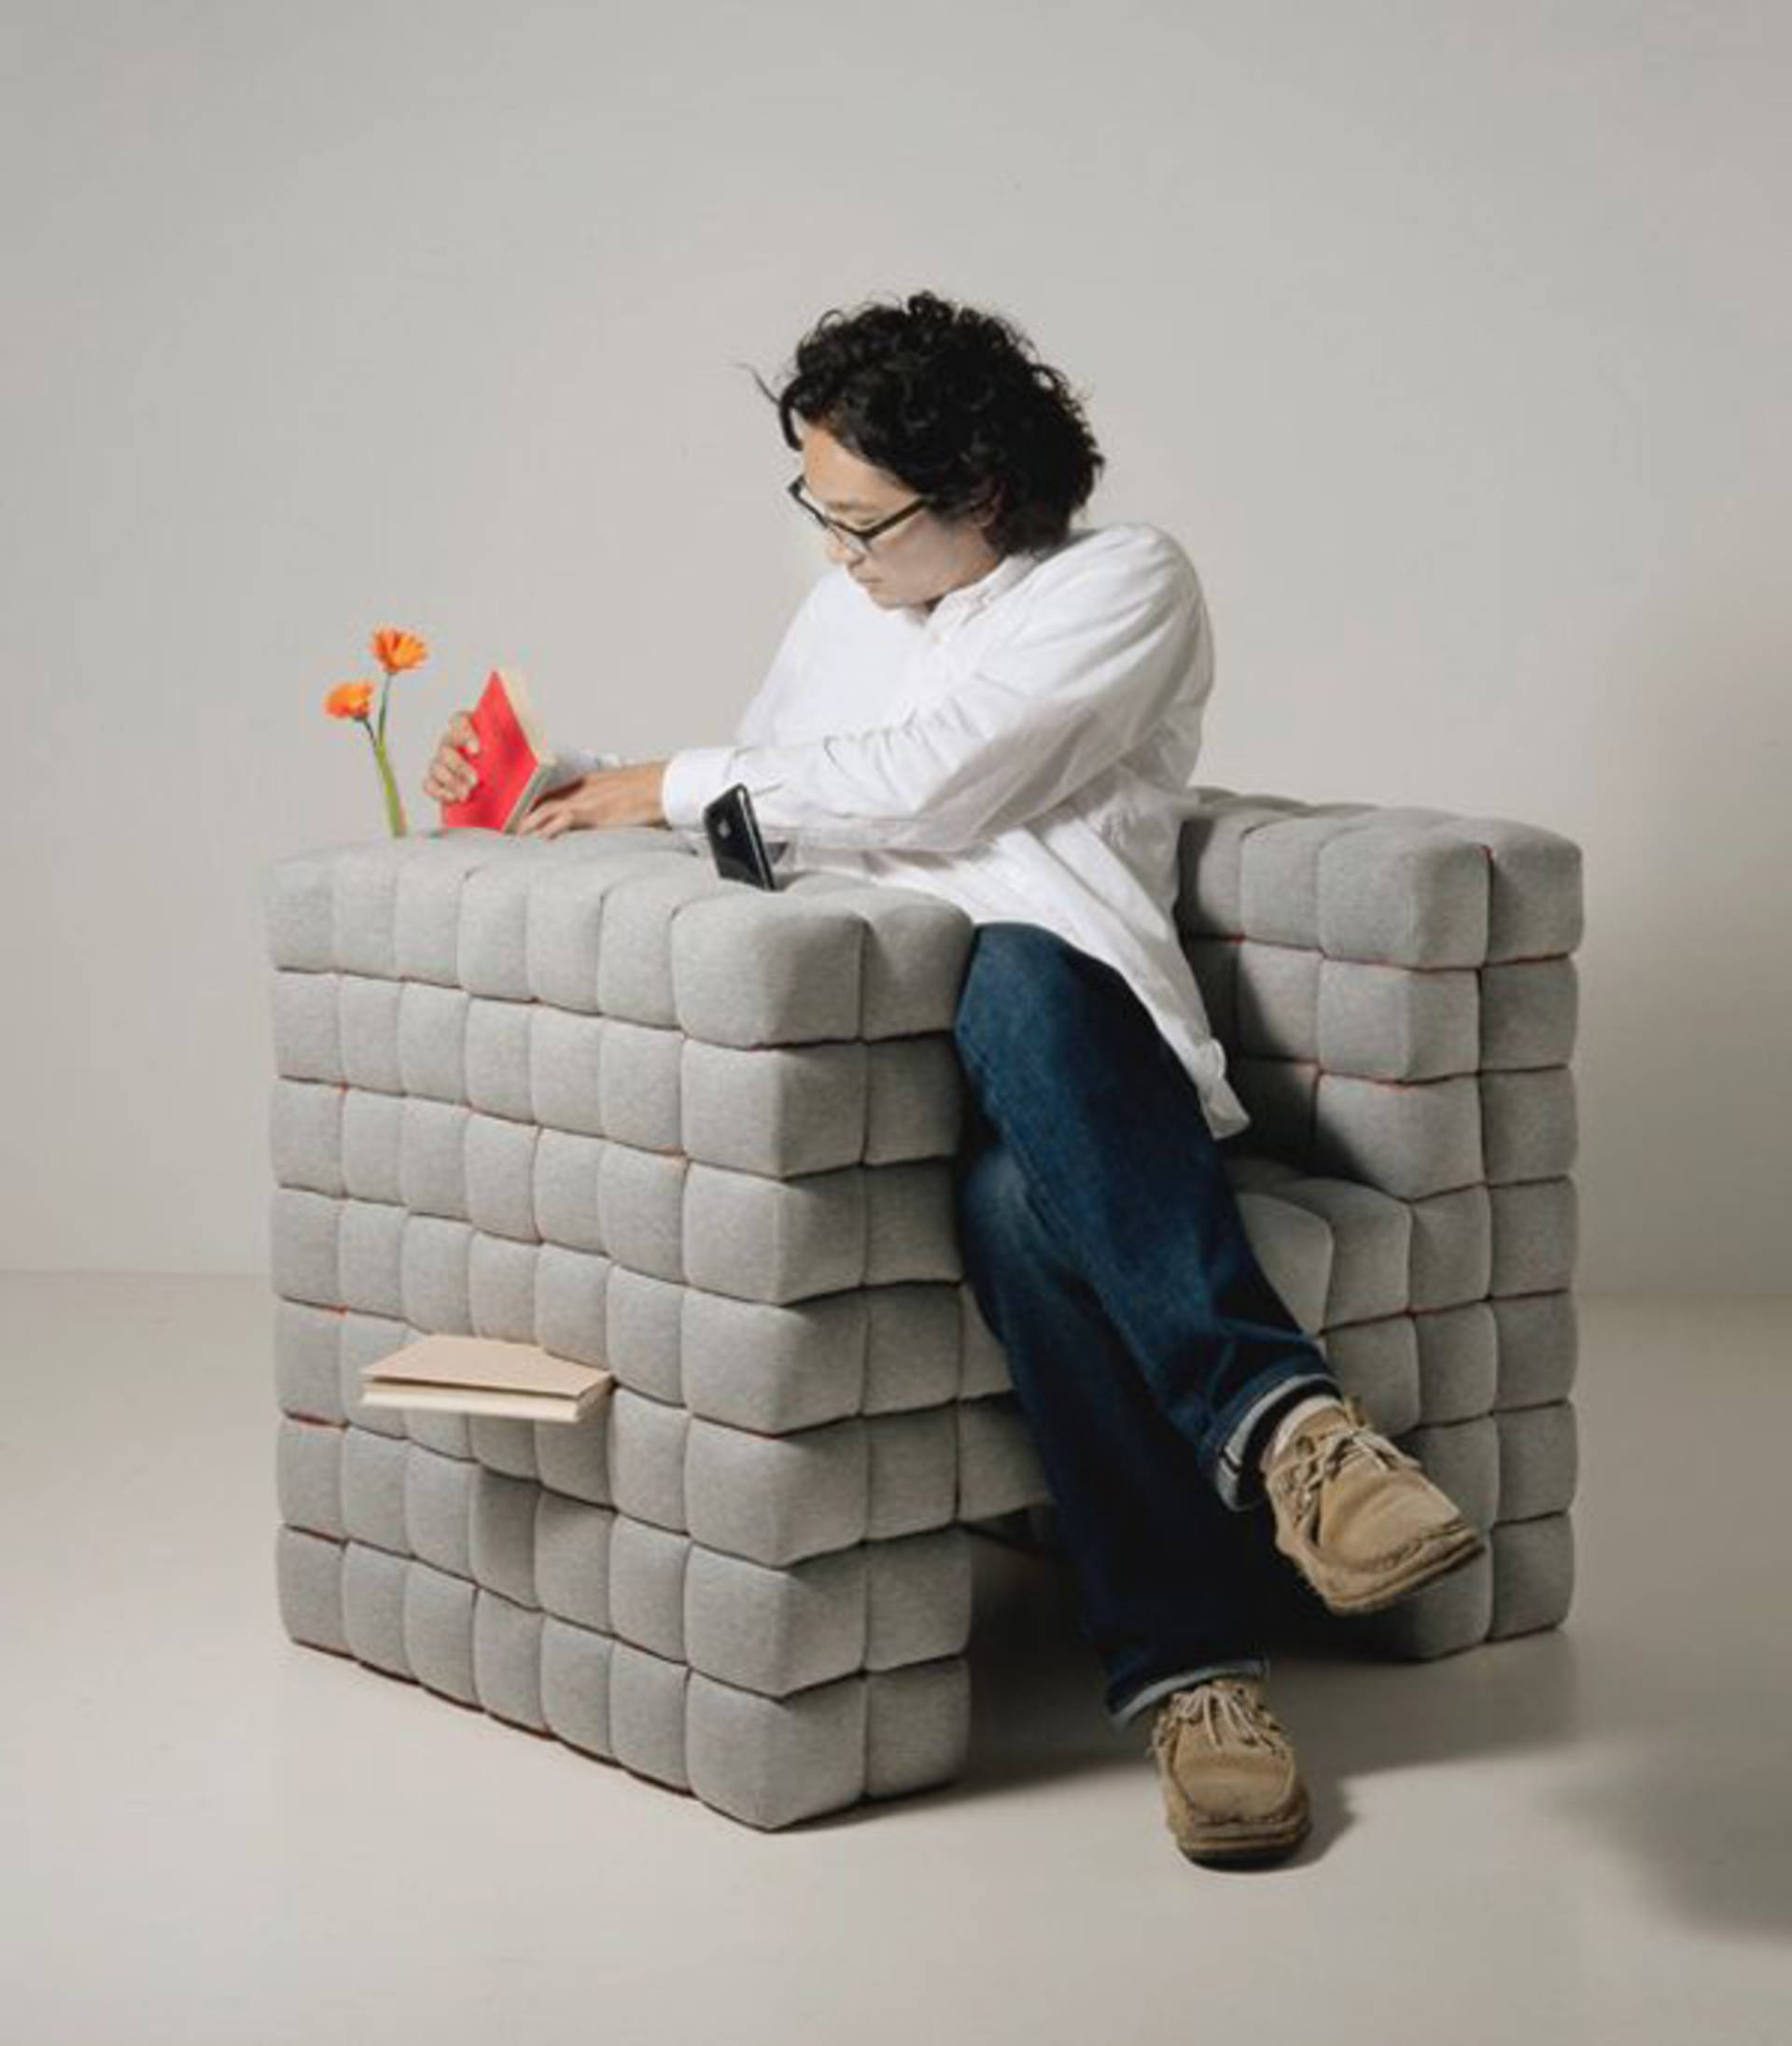 Two Unusual Chairs from Daisuke Motogi Architecture & Two Unusual Chairs from Daisuke Motogi Architecture - Home Reviews